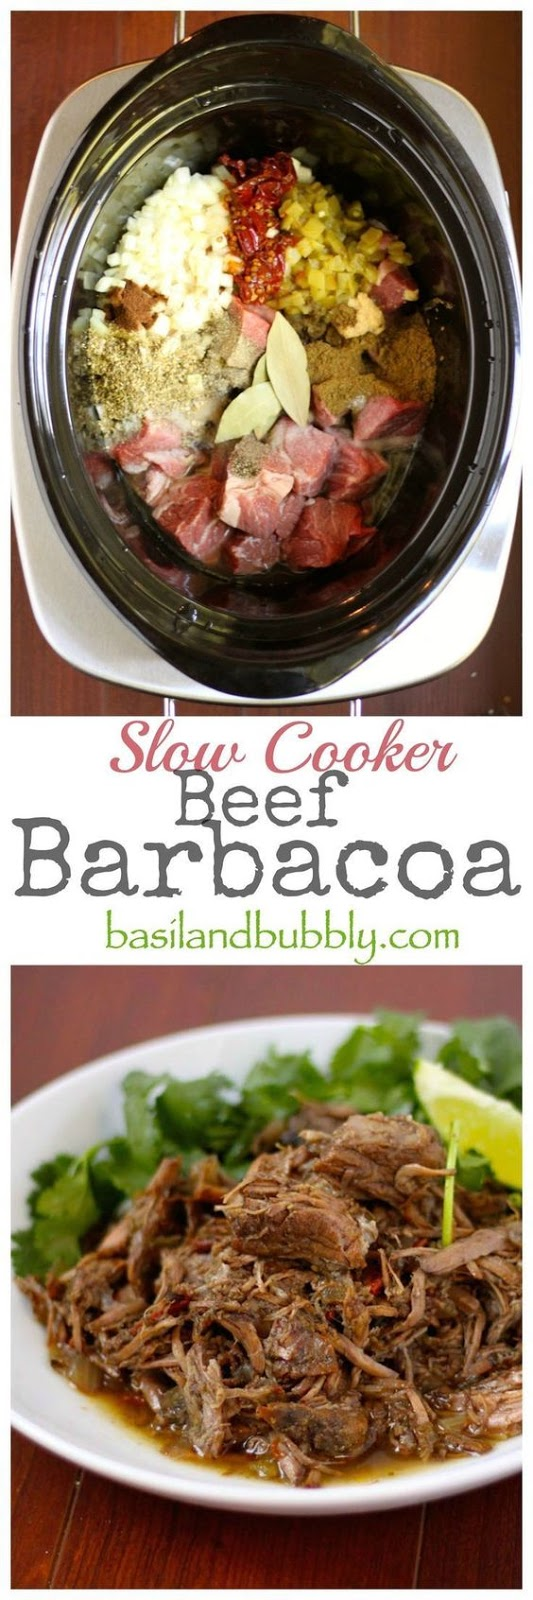 Slow Cooker Barbacoa #SLOWCOOKER #DINNER